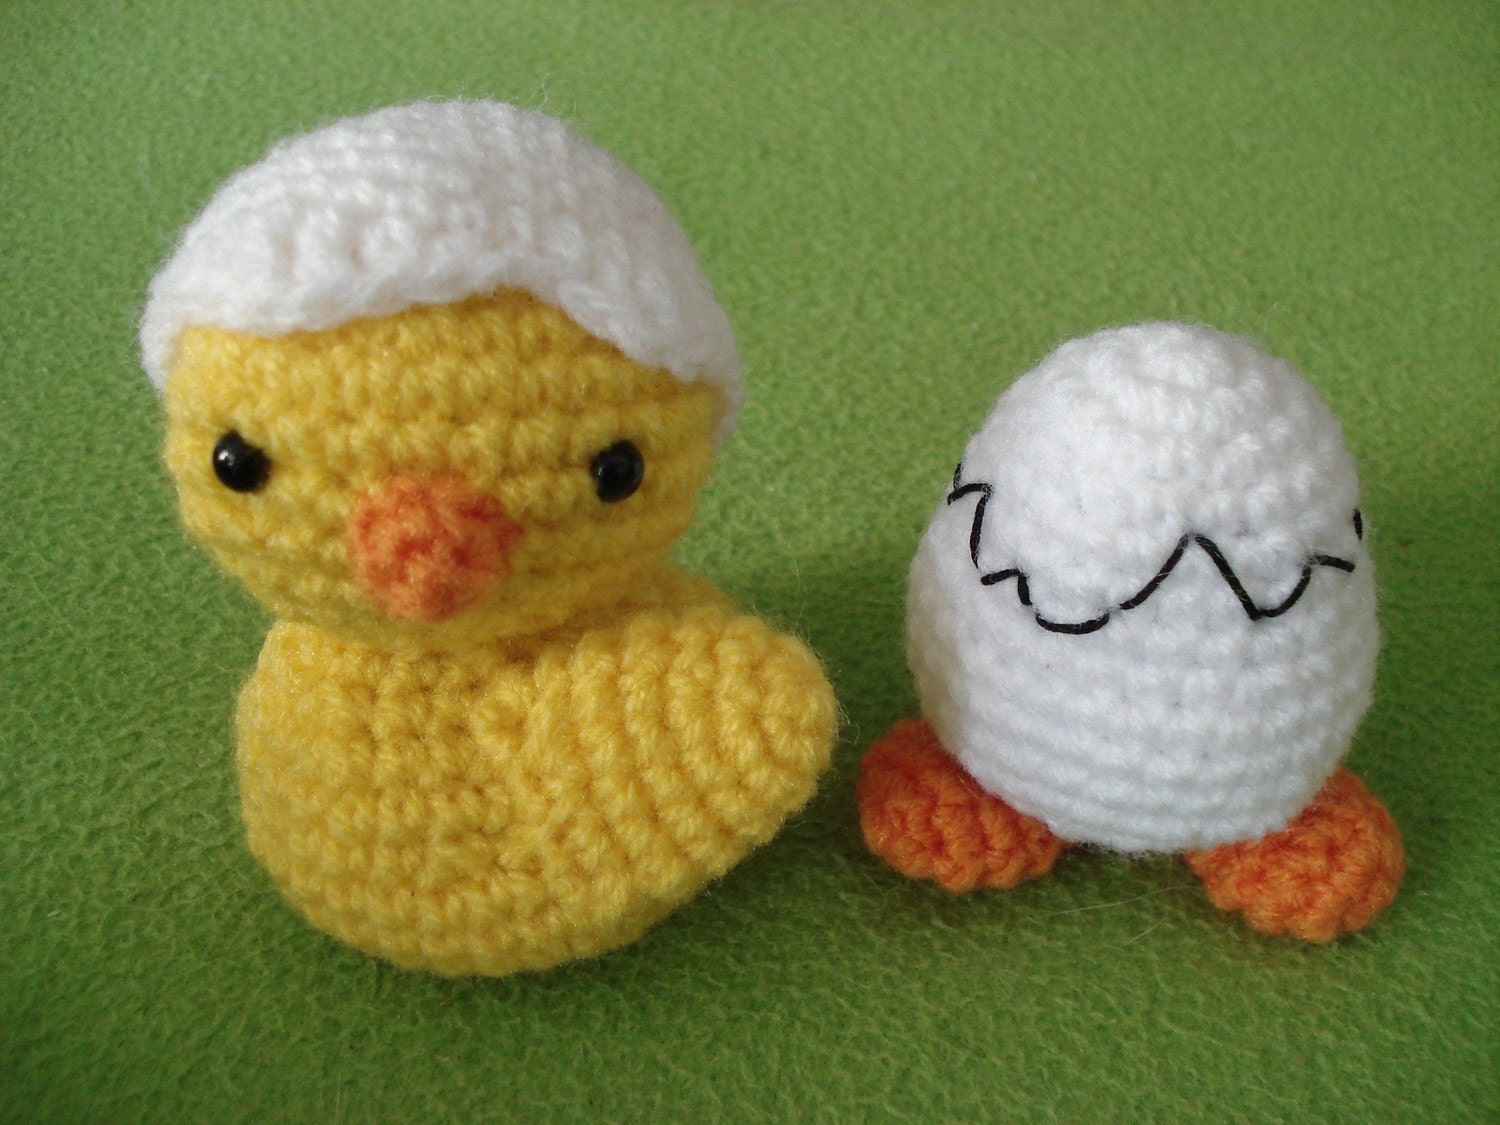 Amigurumi Fried Egg Pattern : Amigurumi Pattern Chicken and Egg with Feet Easter by ...